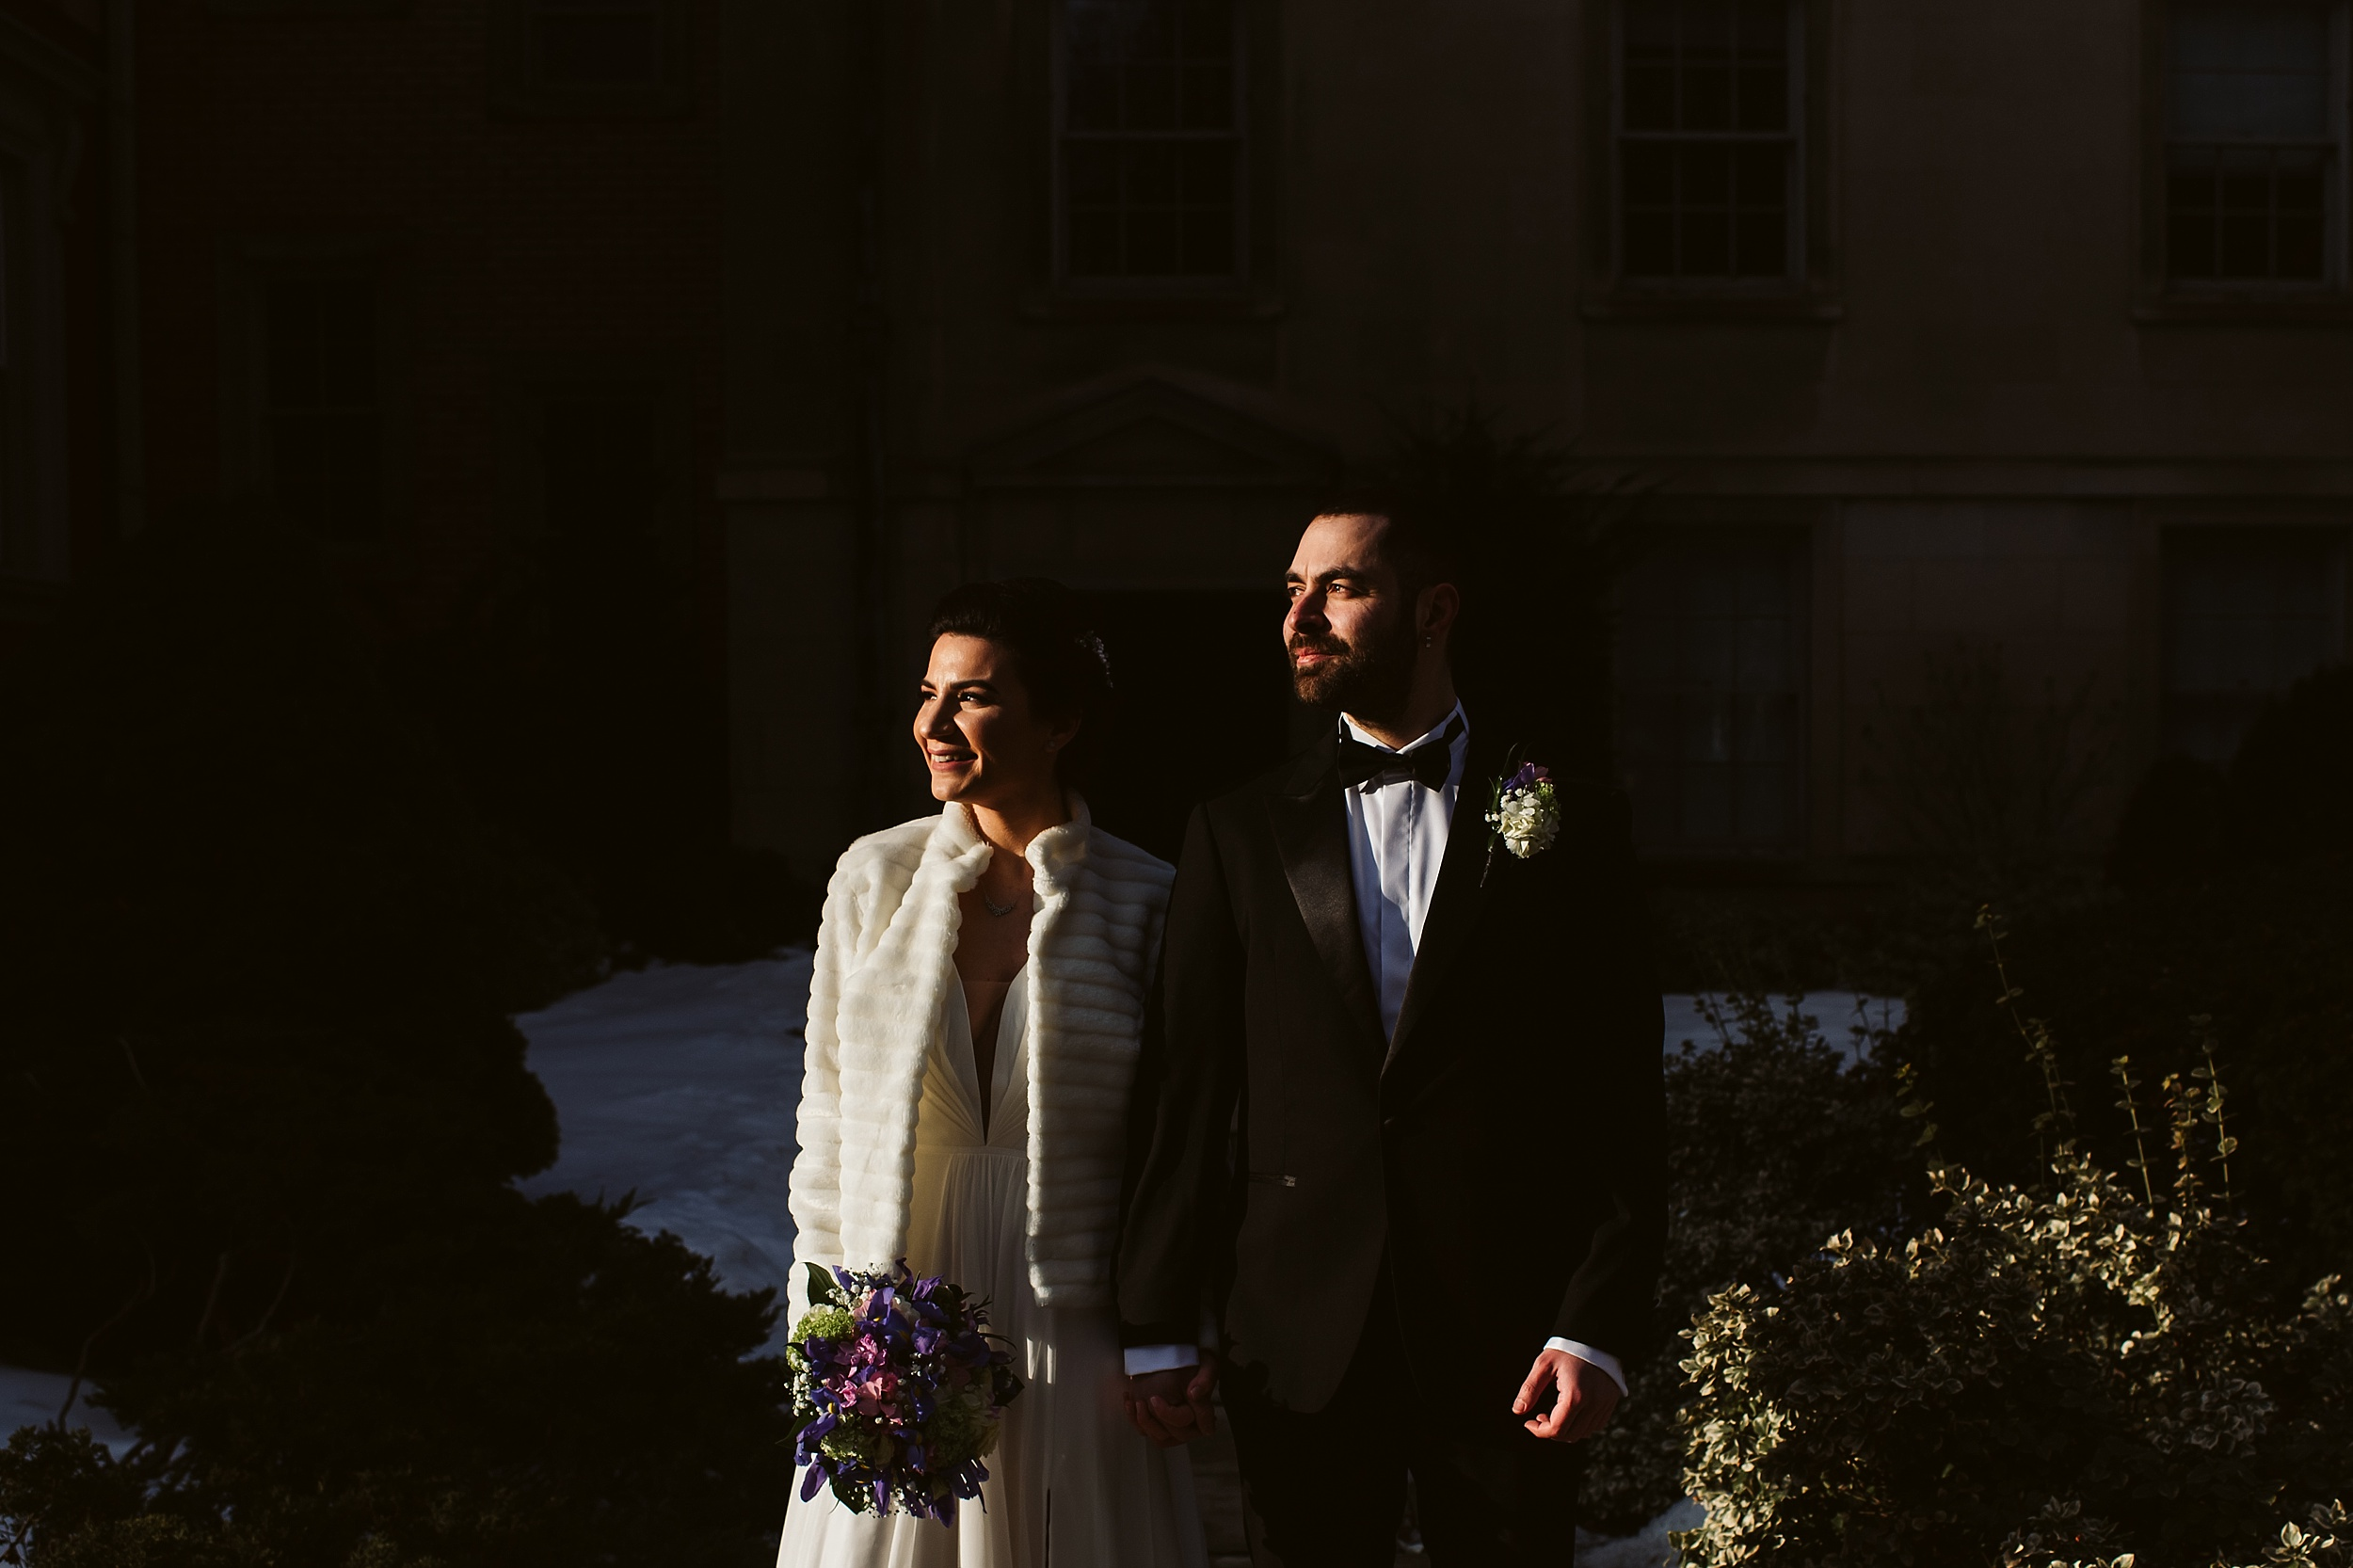 Toronto_City_Hall_Elopement_Wedding_Photographer012.jpg